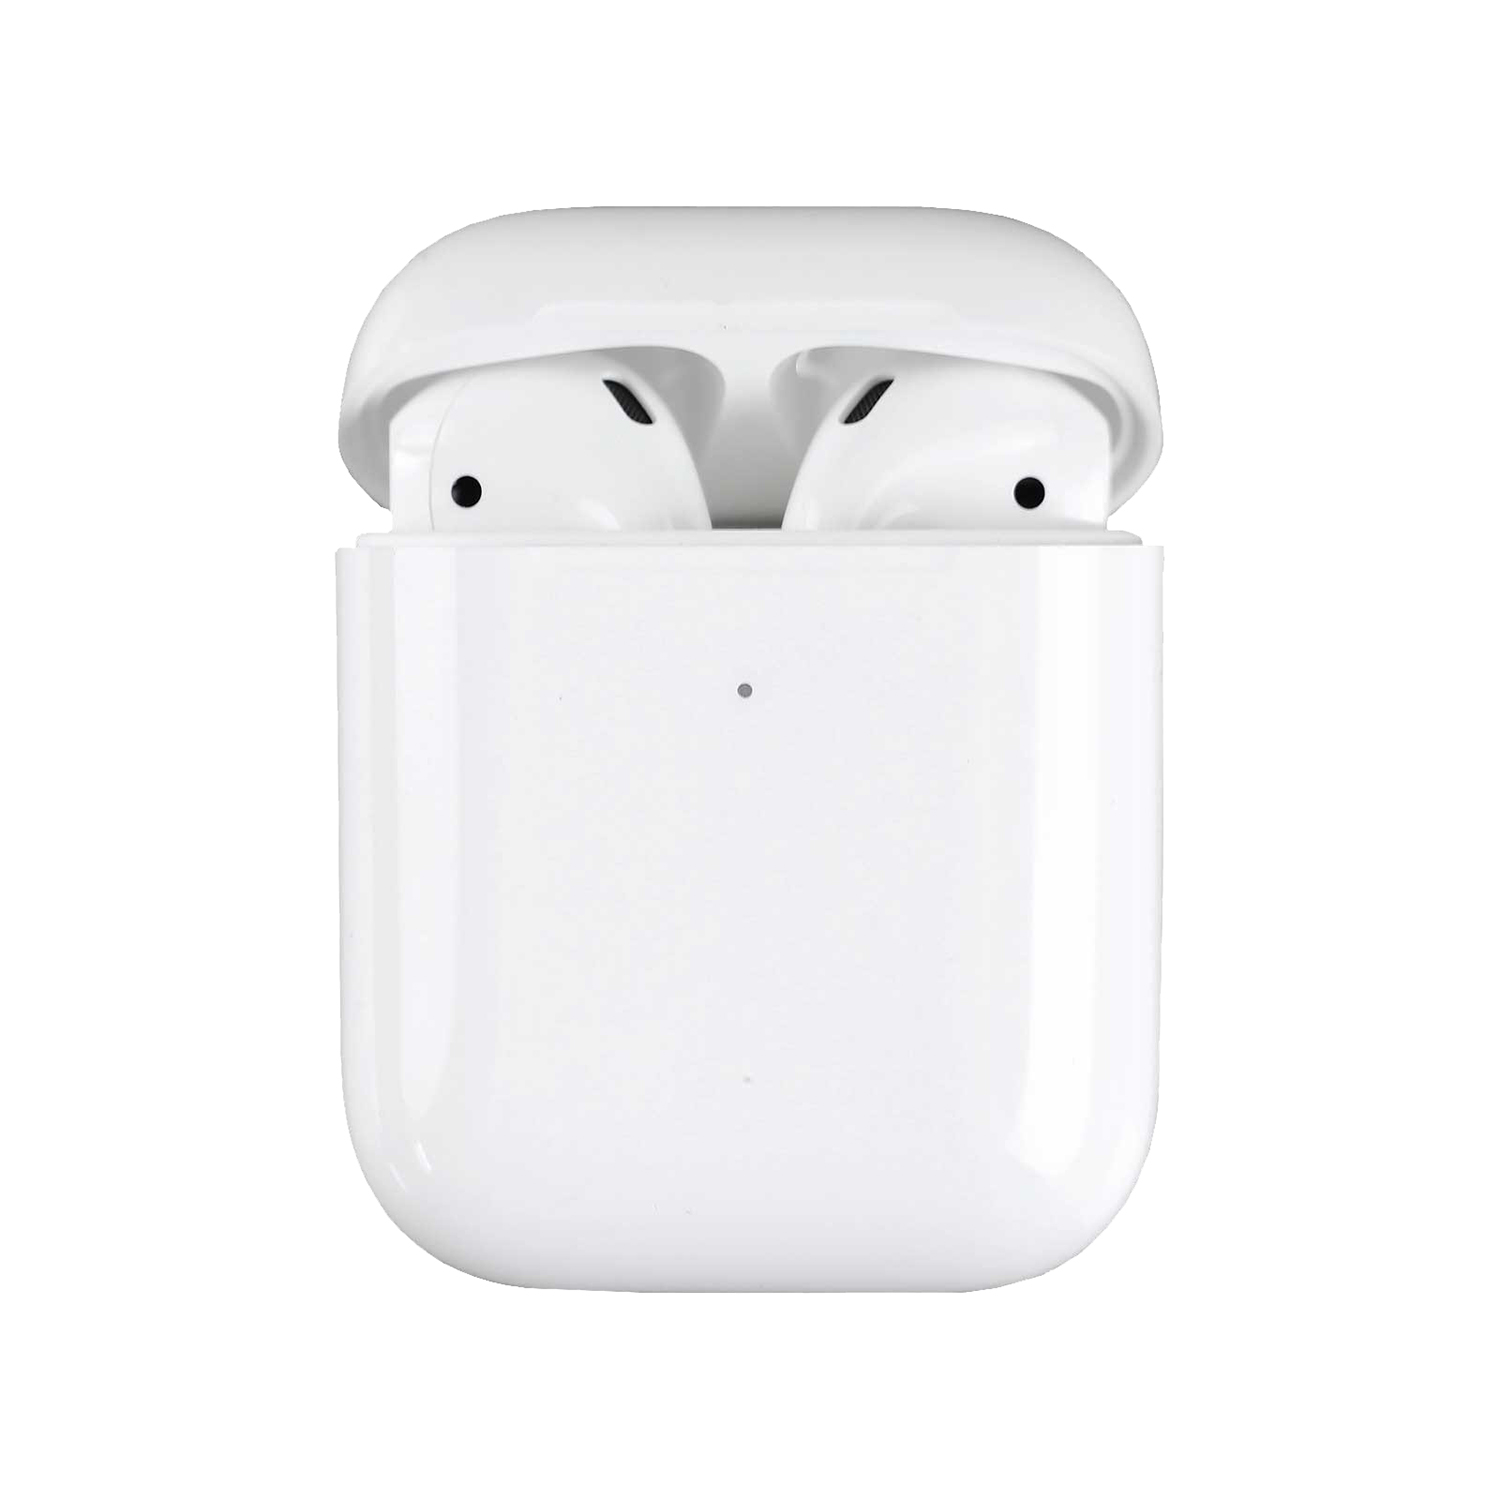 Phone headsets Apple AirPods With Charging Case Ref MV7N2ZM/A